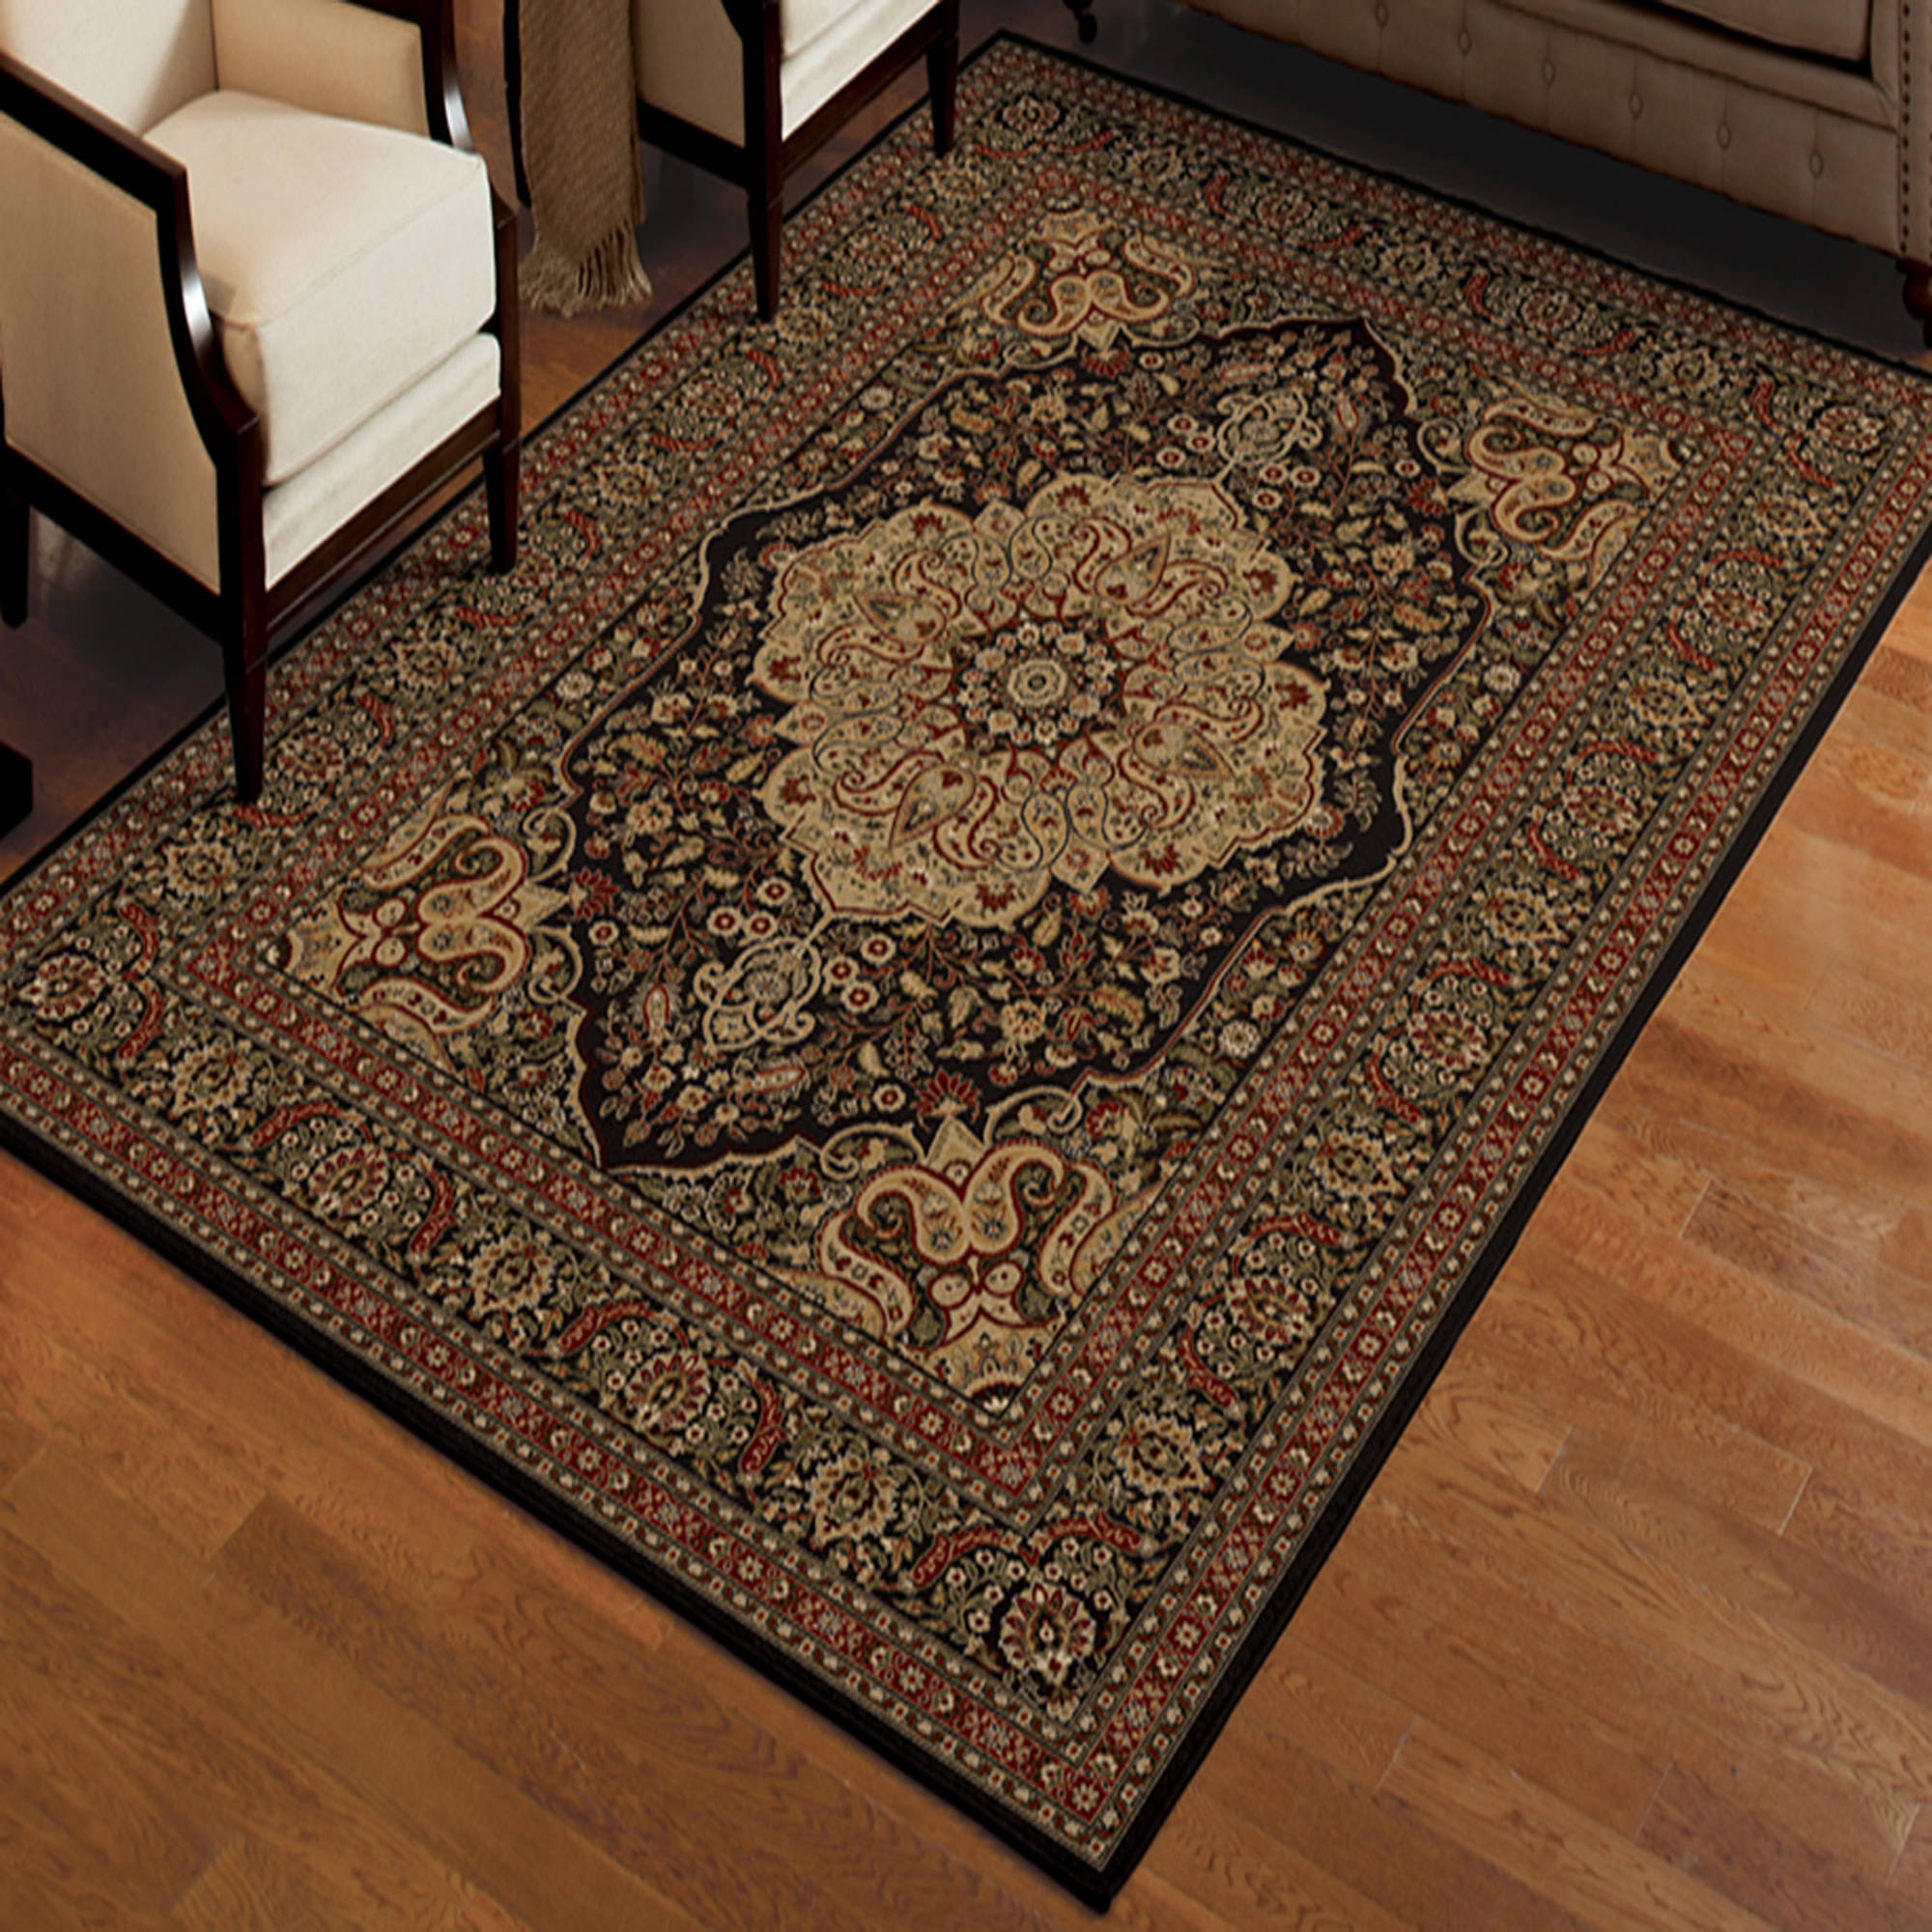 Kindley Black Area Rug 6 7 X 9 8 Walmart Com